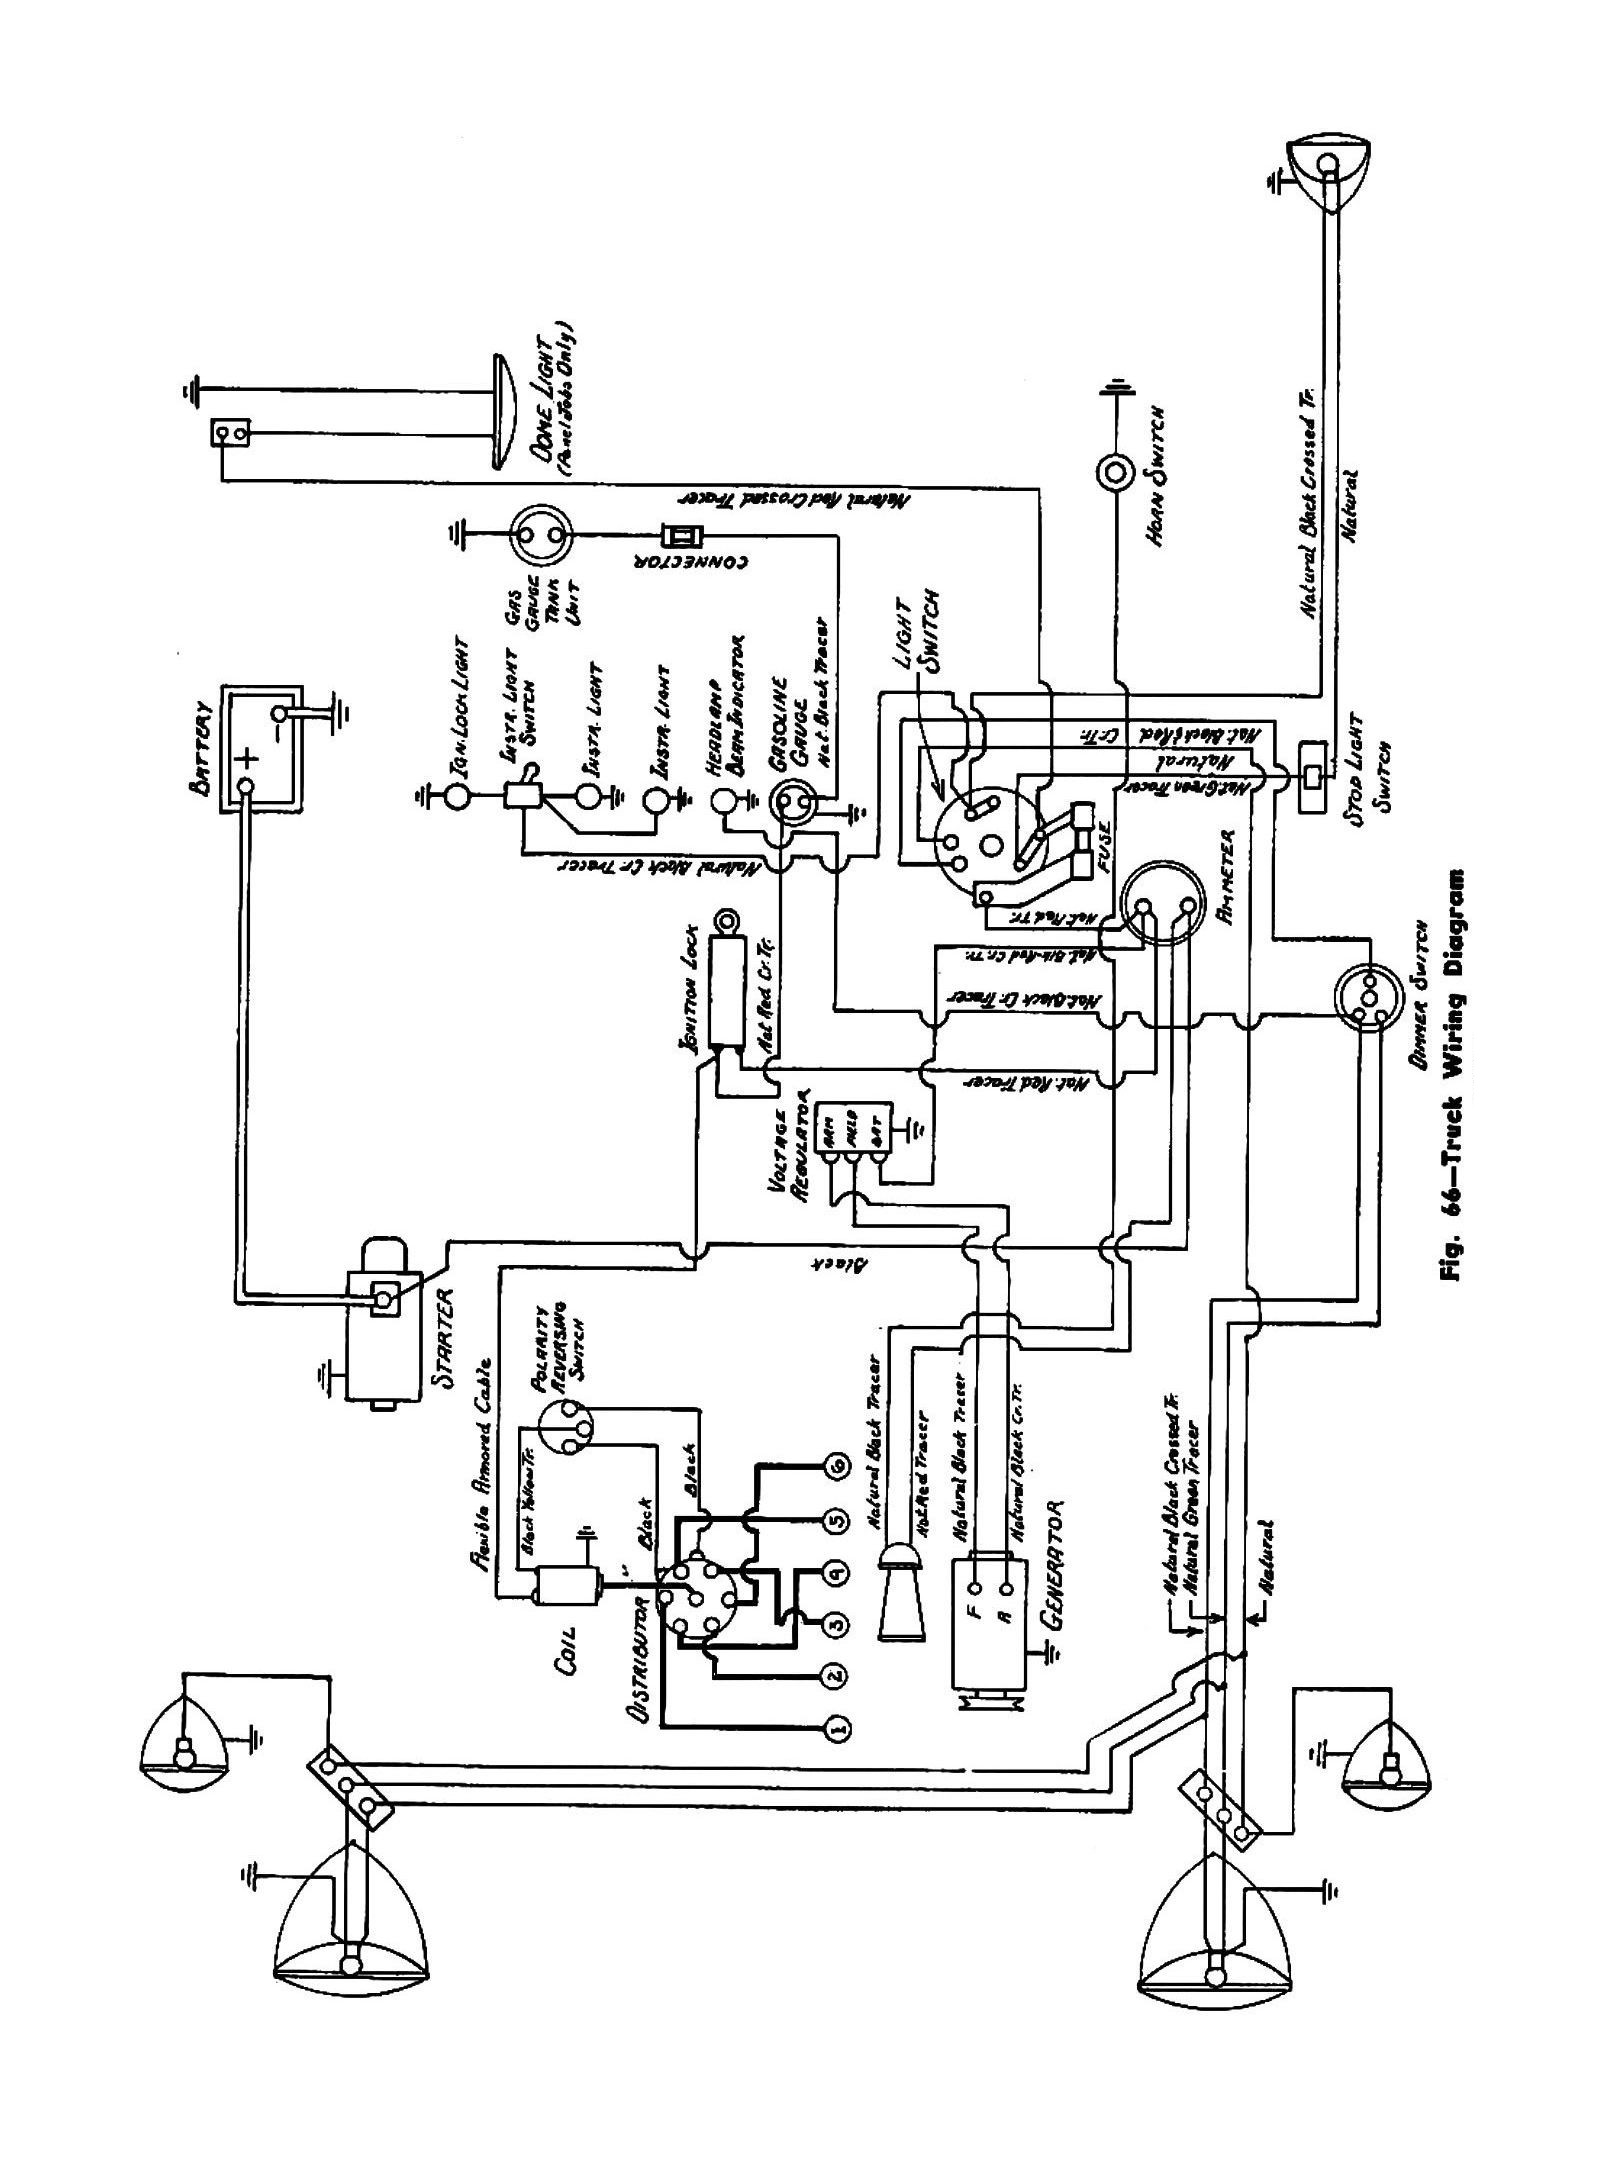 45truck truck wiring diagram 1986 chevy truck wiring diagram \u2022 free wiring 1946 ford truck wiring diagram at eliteediting.co